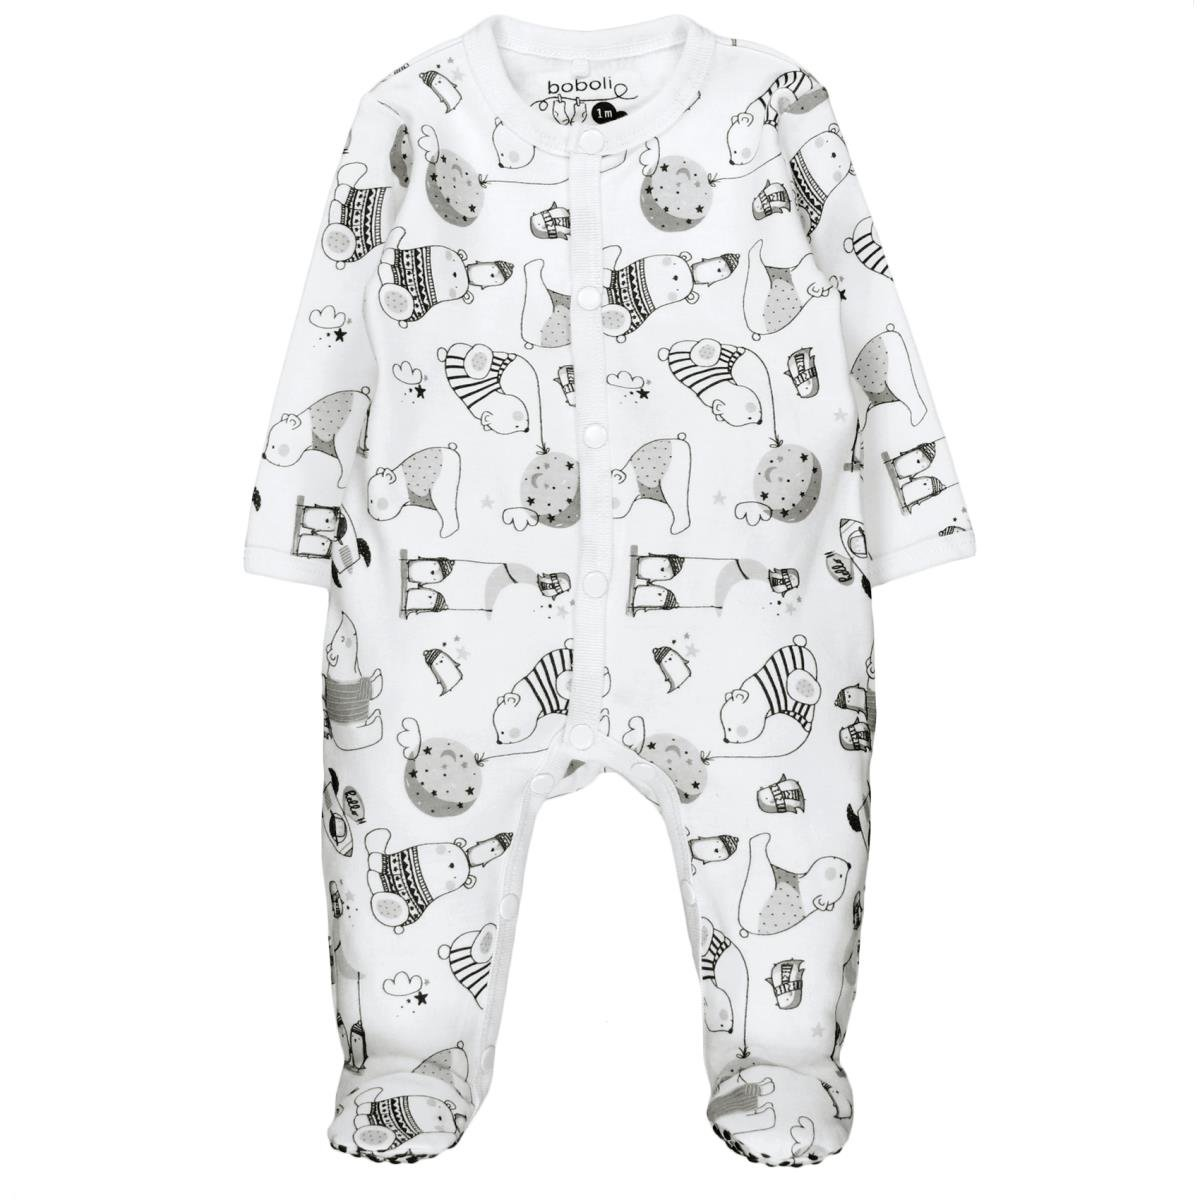 boboli Interlock Play Suit FOR Baby, Pelele para Bebé-Niños 132095